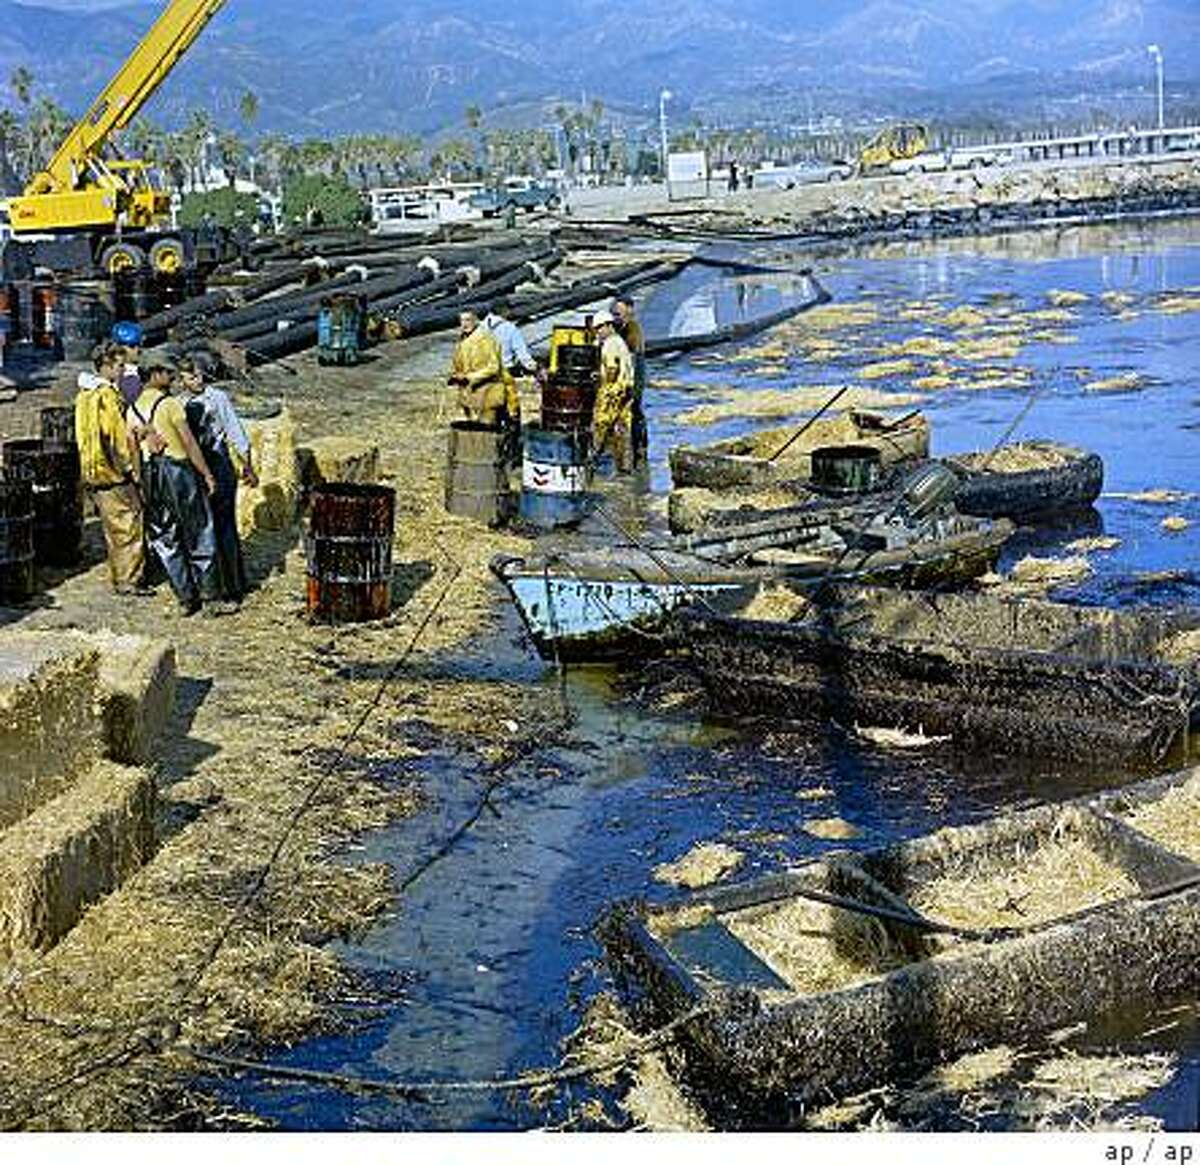 Workmen using pitchforks and shovels attempt to clean up oil-soaked straw from the beach at Santa Barbara Harbor, Calif. Feb. 7, 1969 after oil leaking from an off-shore well for over a week covered local beaches. (AP Photo)